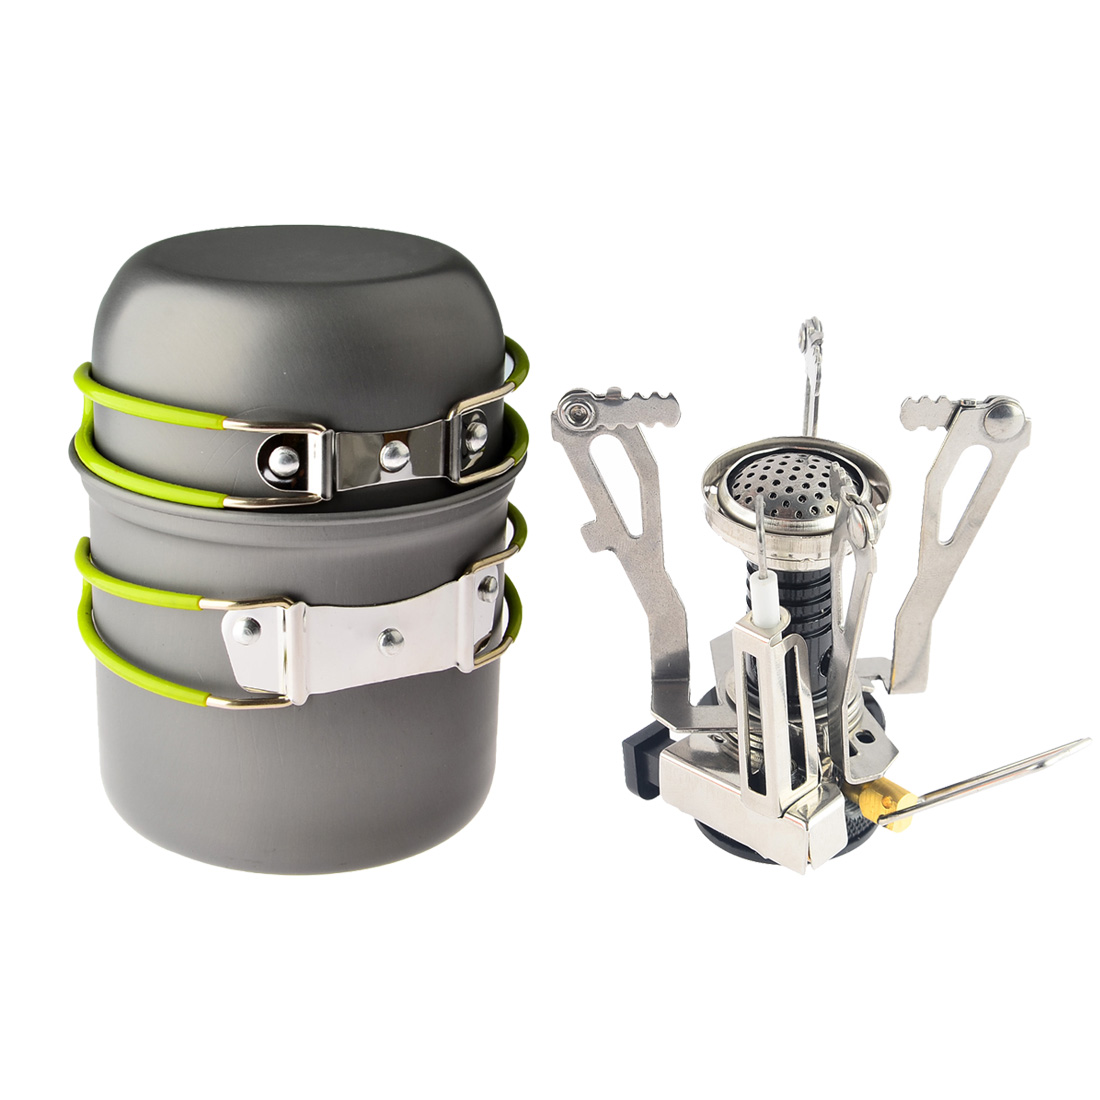 Outdoor Camping Hiking Backpacking Picnic <font><b>Cookware</b></font> Cooking Tool Set Pot Pan + Piezo Ignition Canister Stove travel <font><b>Cookware</b></font>